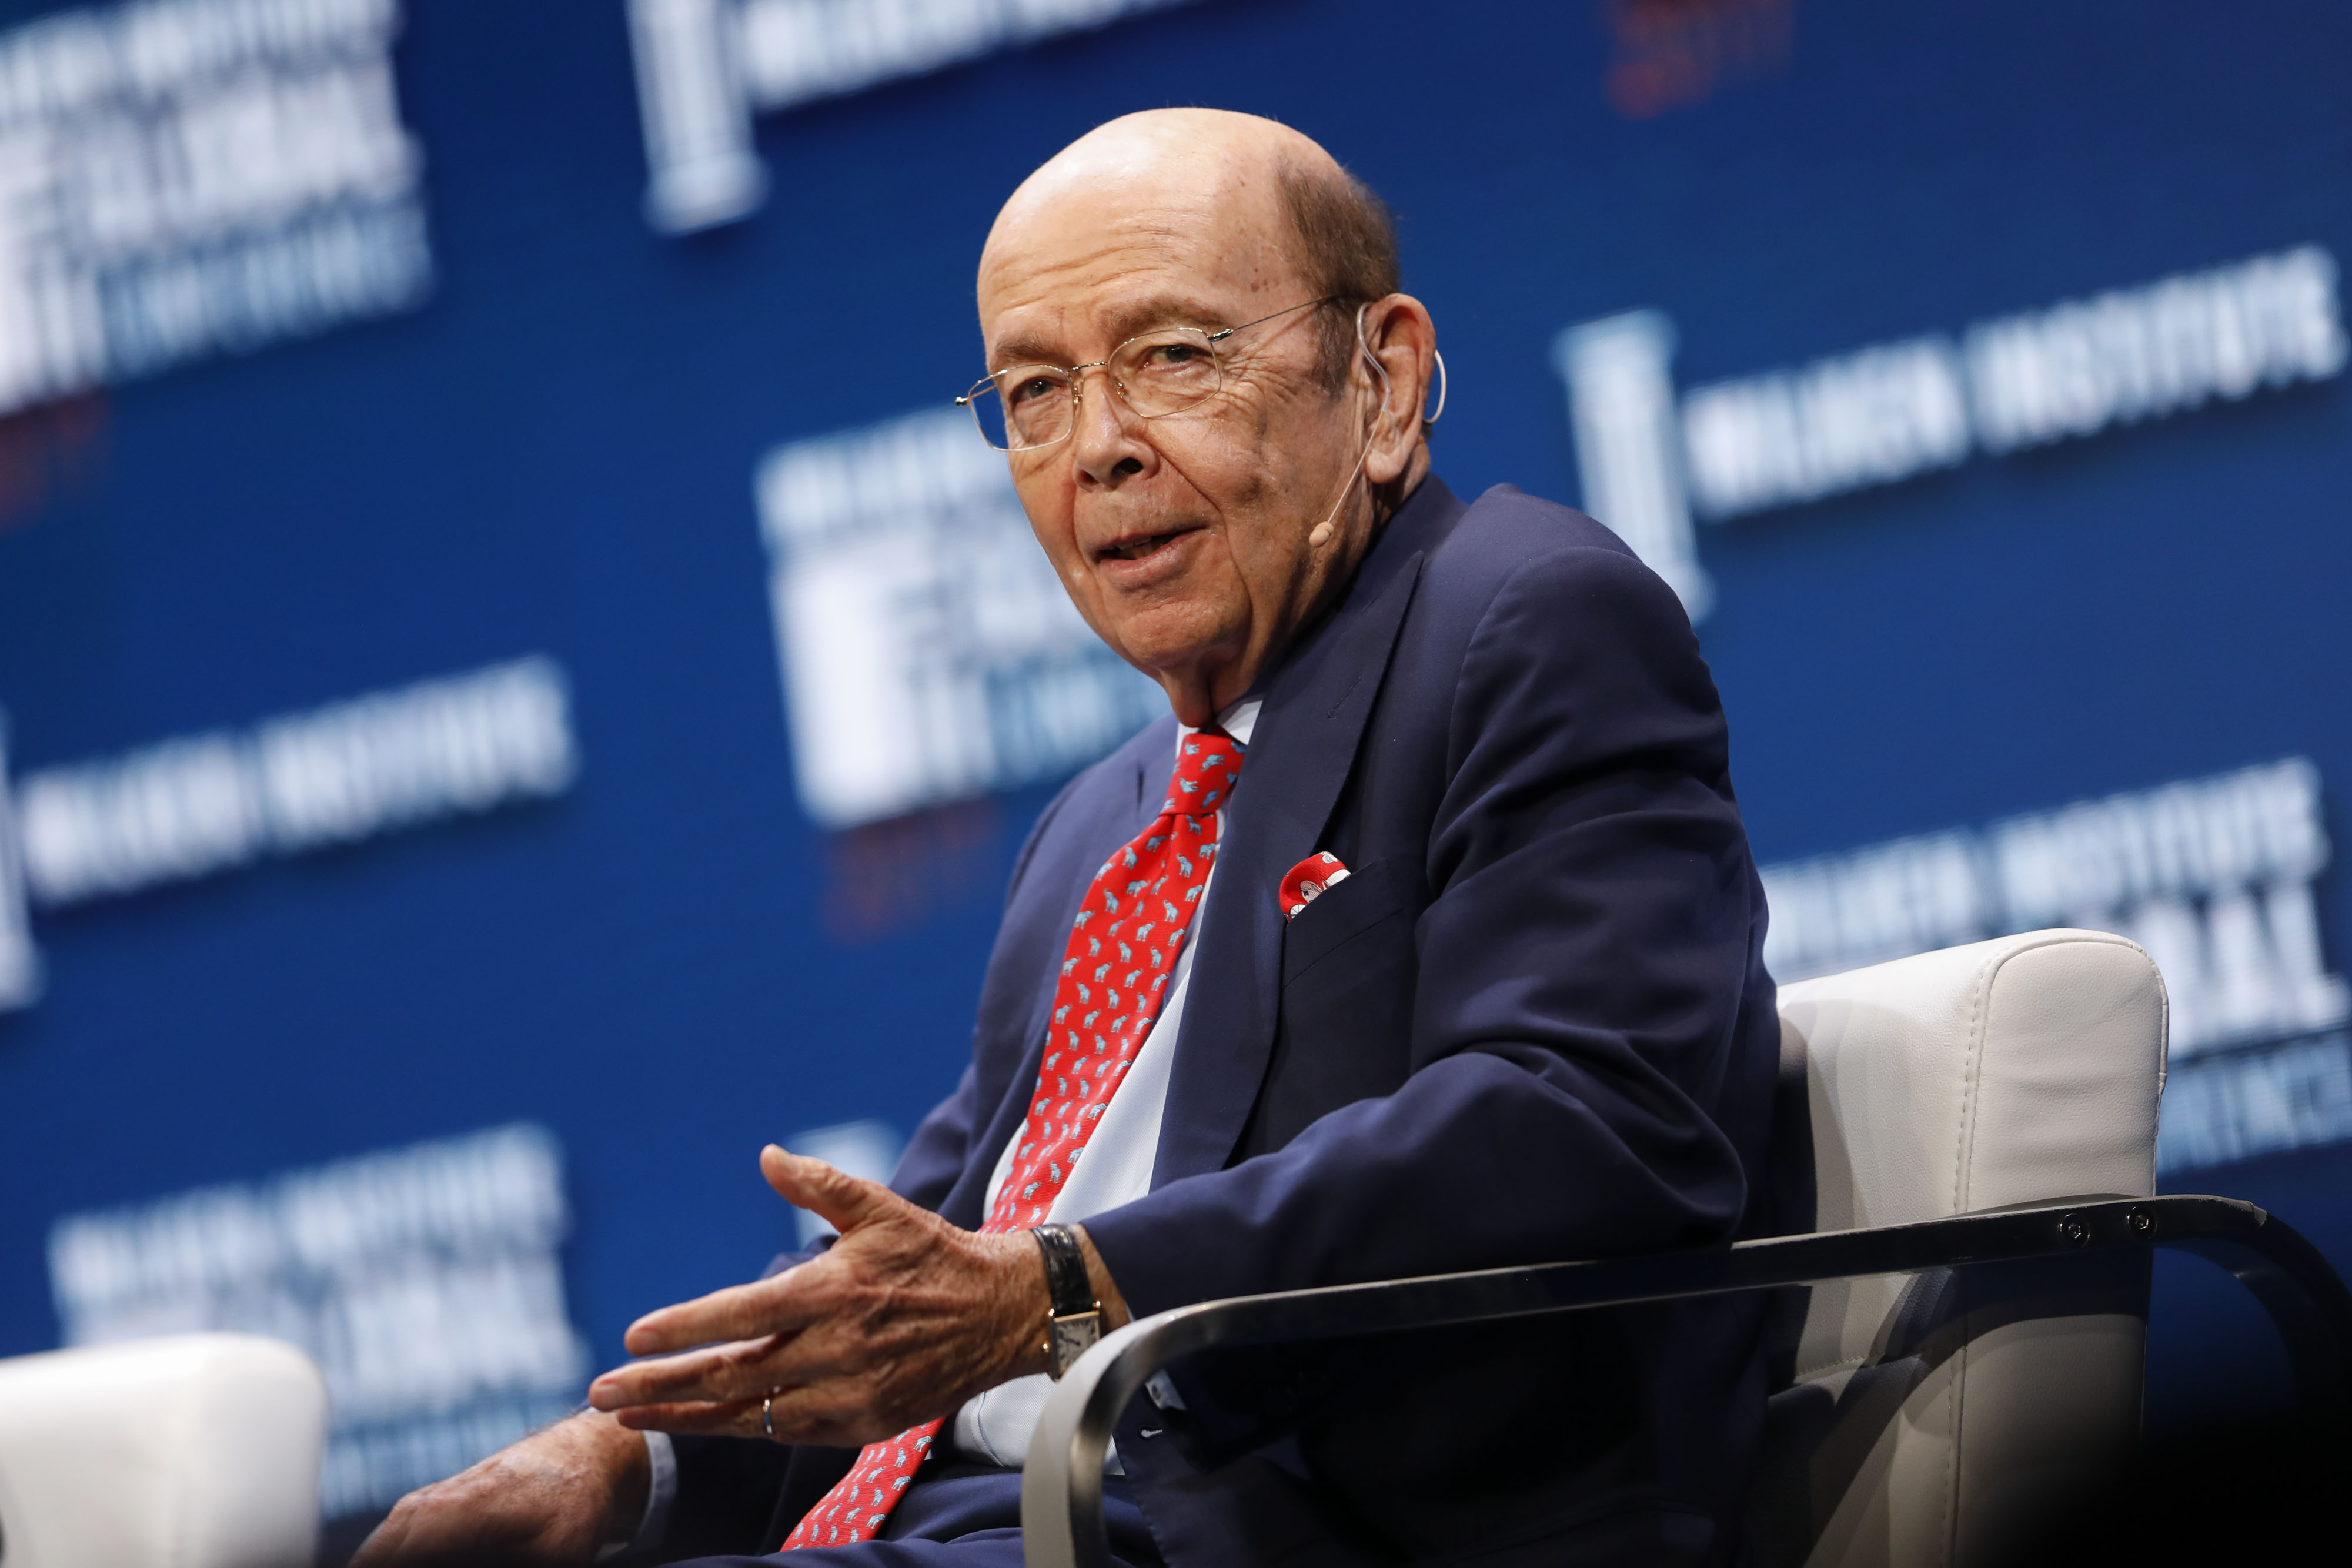 Wilbur Ross, U.S. secretary of commerce, speaks during the Milken Institute Global Conference in Beverly Hills, California, U.S., on Monday, May 1, 2017.